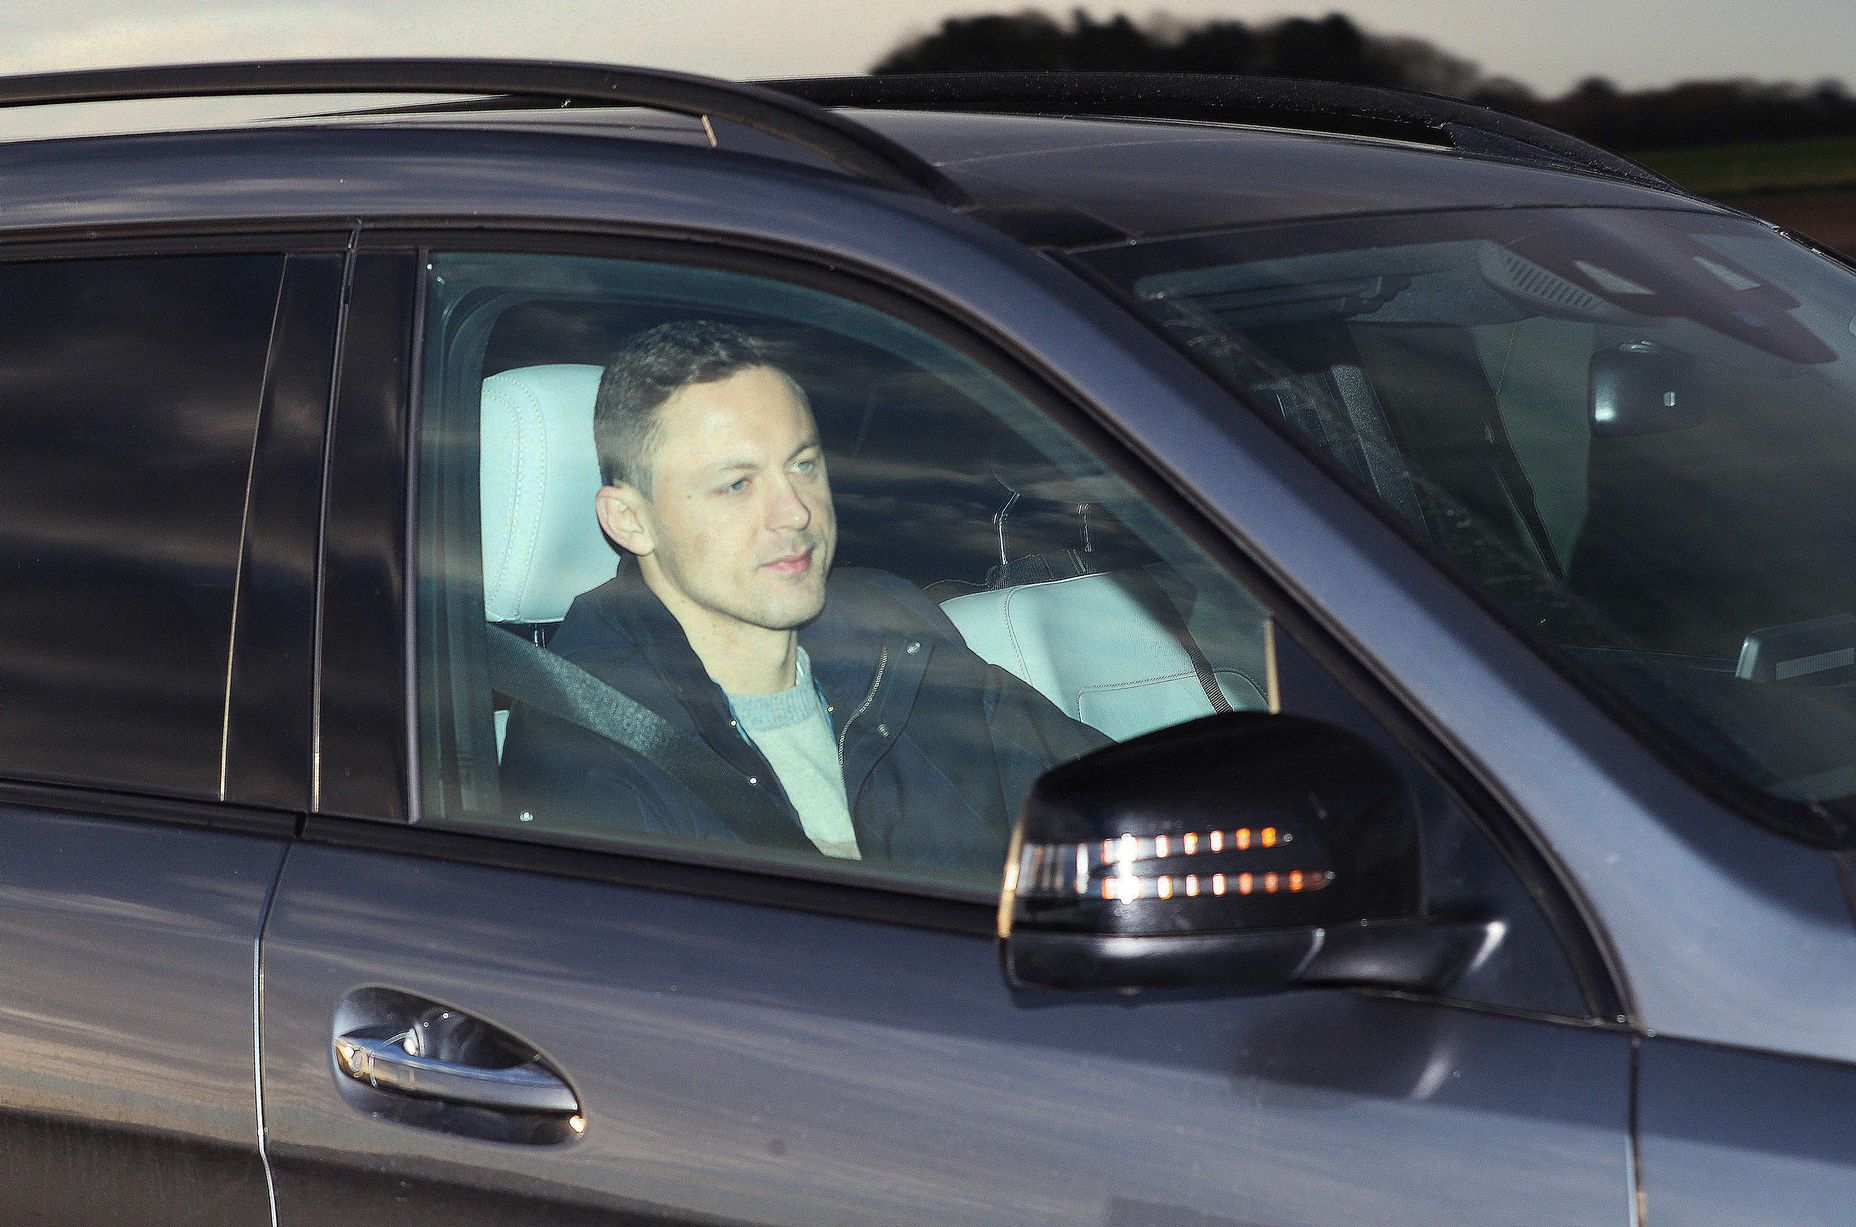 Pictures: Manchester United players arrive at Carrington after Tranmere win - Bóng Đá